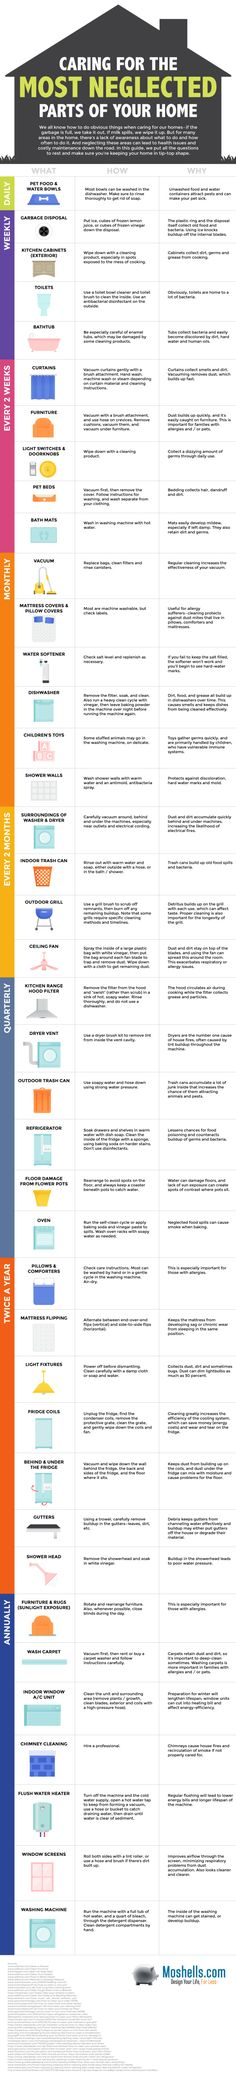 You probably do the basic stuff when you clean your home, like wiping down counters and washing sheets, but some things undoubtedly get forgotten. This visual guide can help you establish a regular cleaning schedule for the stuff that tends to fall by the wayside.